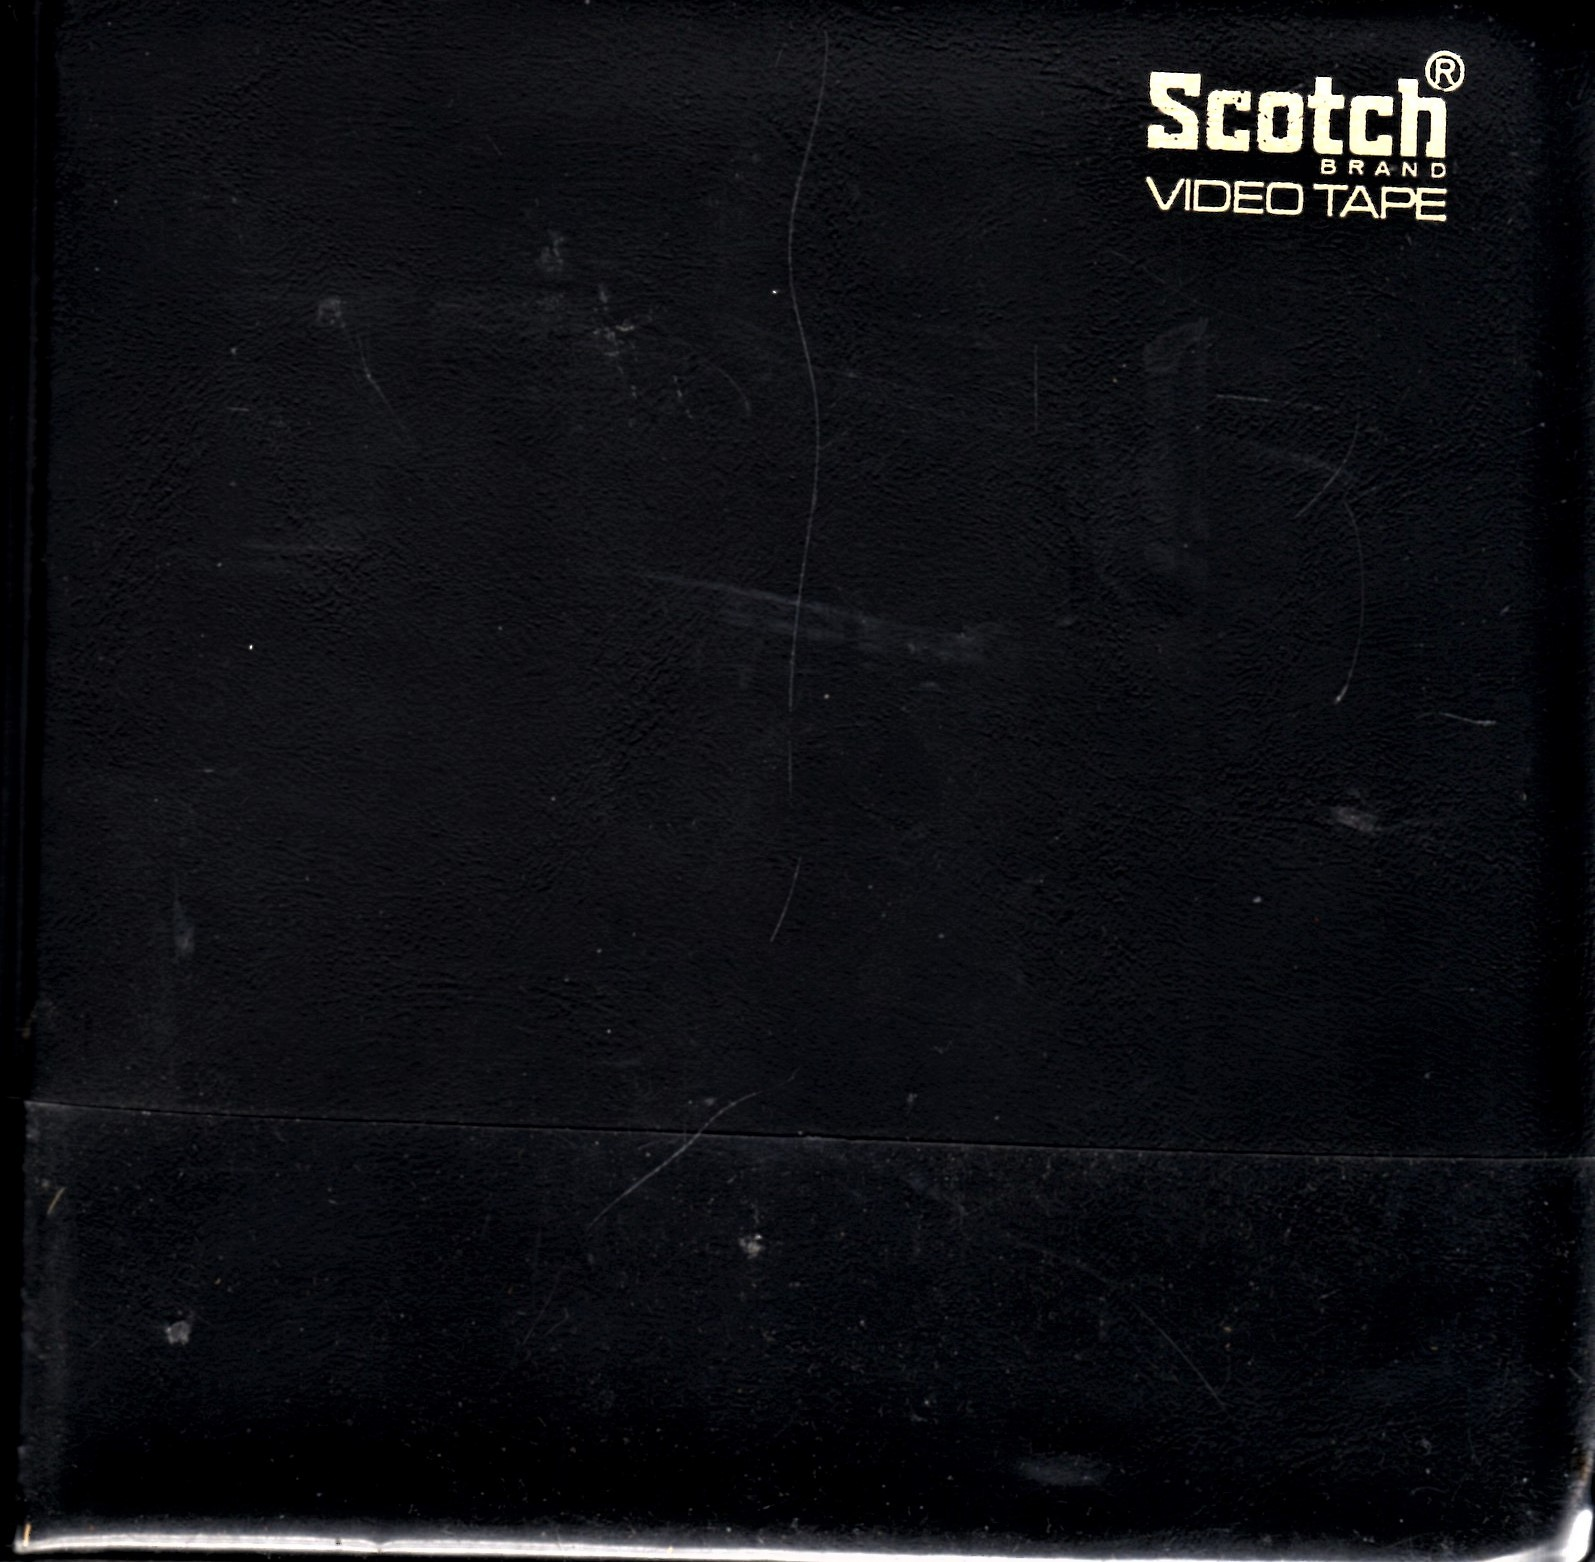 Primary image for Scotch Video Tape Reel to Reel